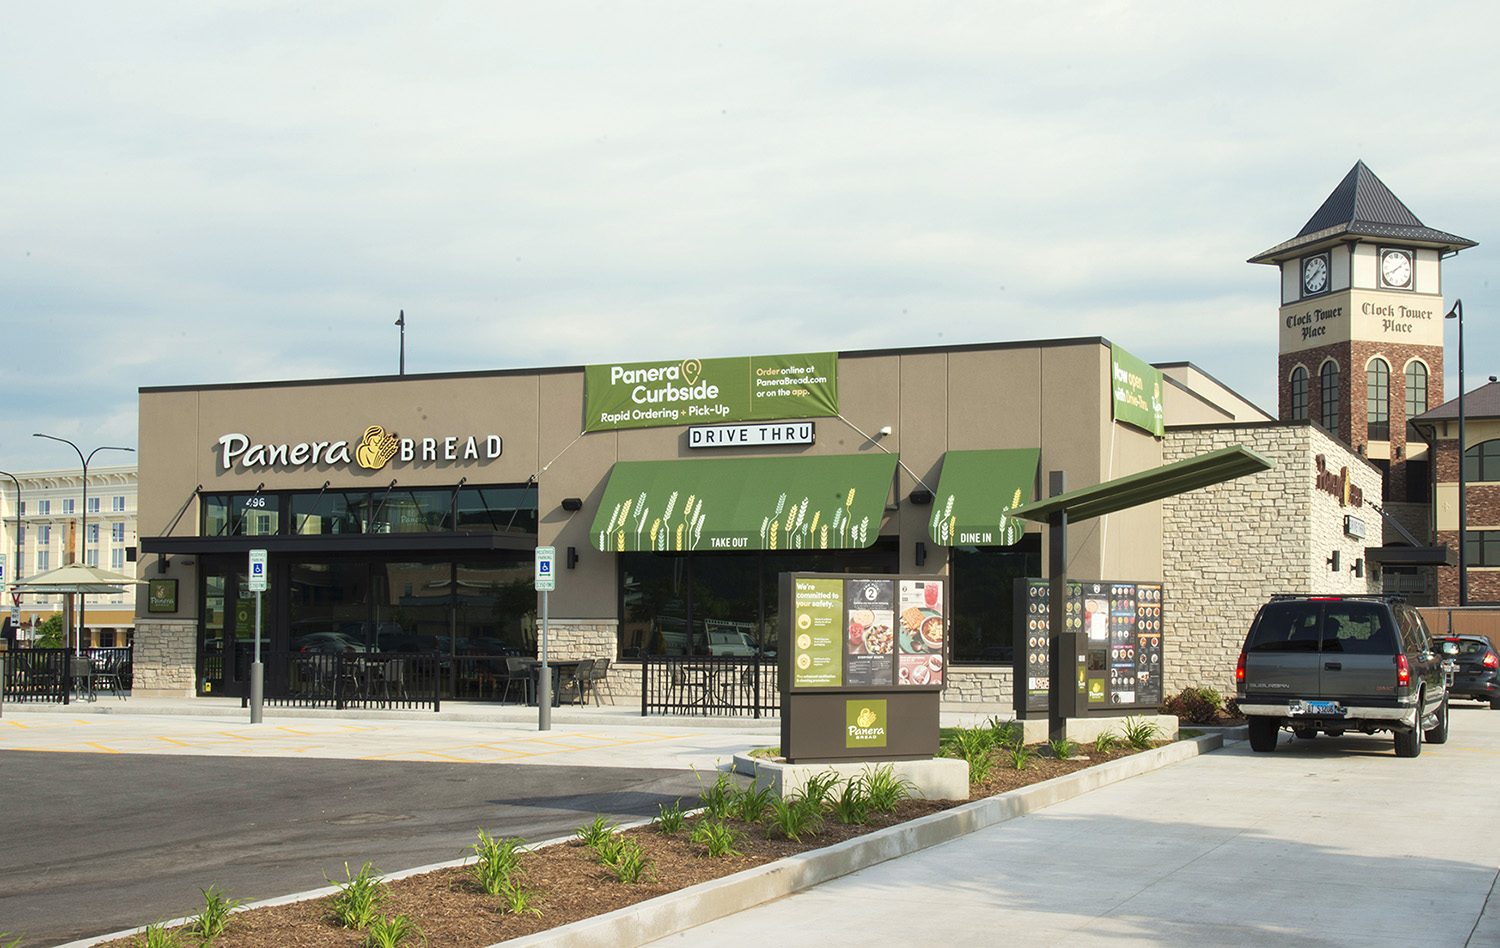 Hanley Investment Group Arranges Sale of New Construction Panera Bread Drive-Thru in East Peoria, Illinois for $3.5 Million